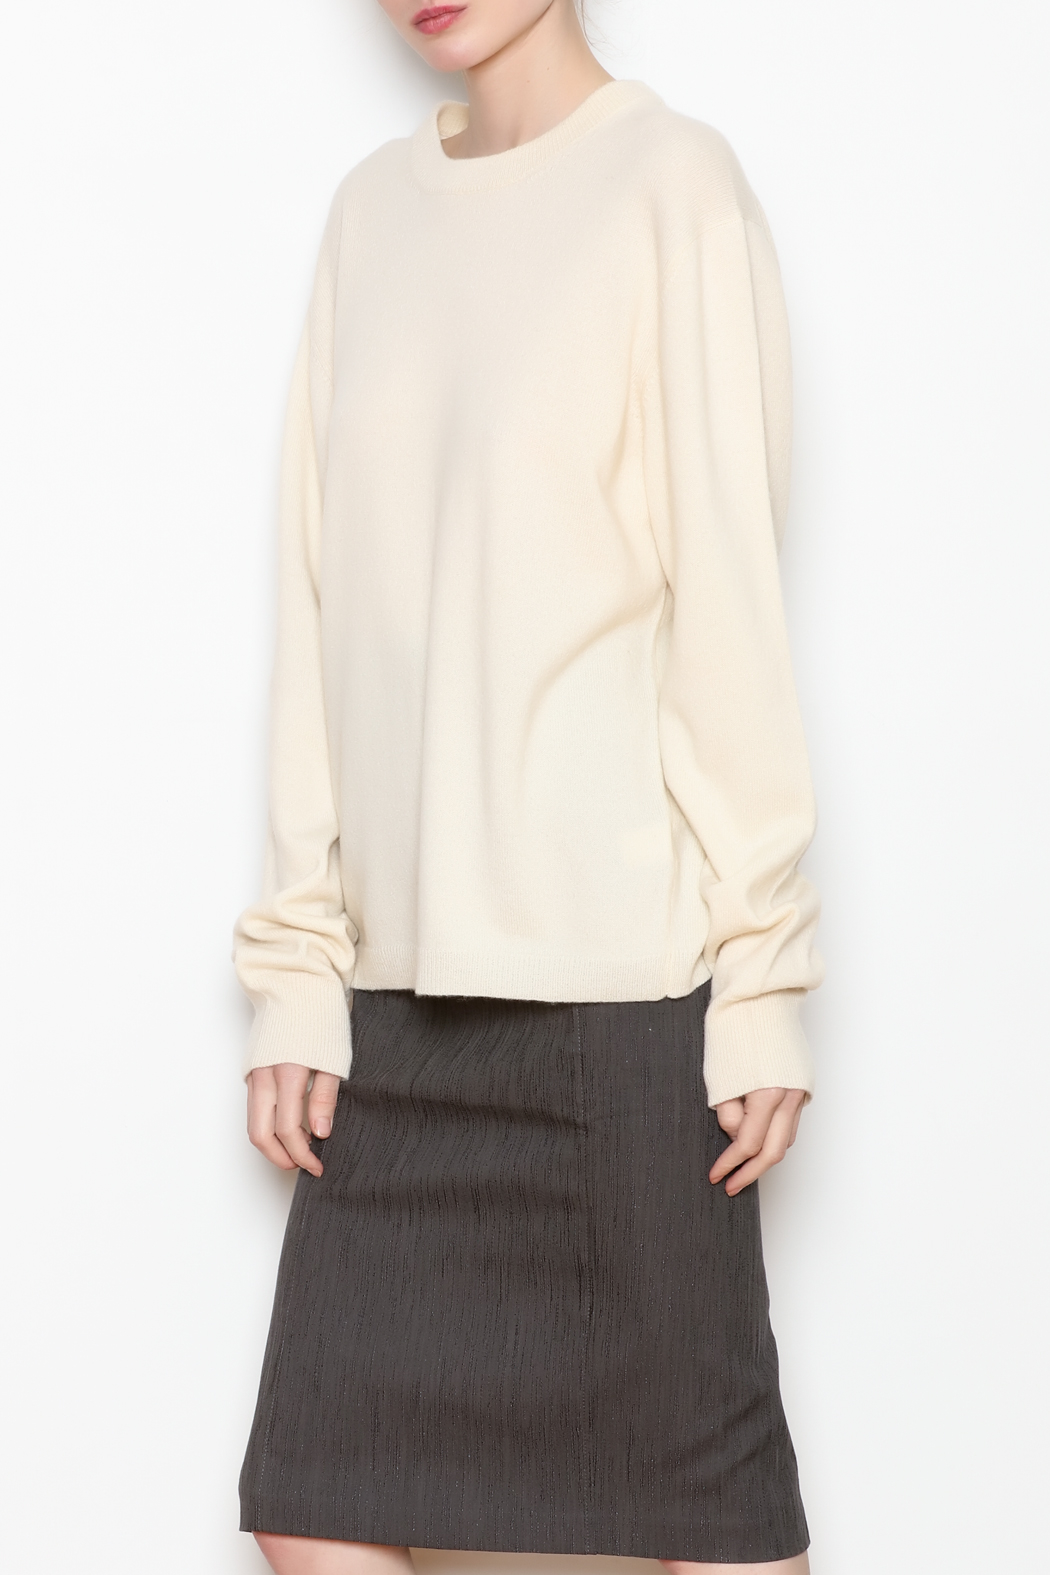 National Cashmere Roundneck Cashmere Sweater - Front Full Image